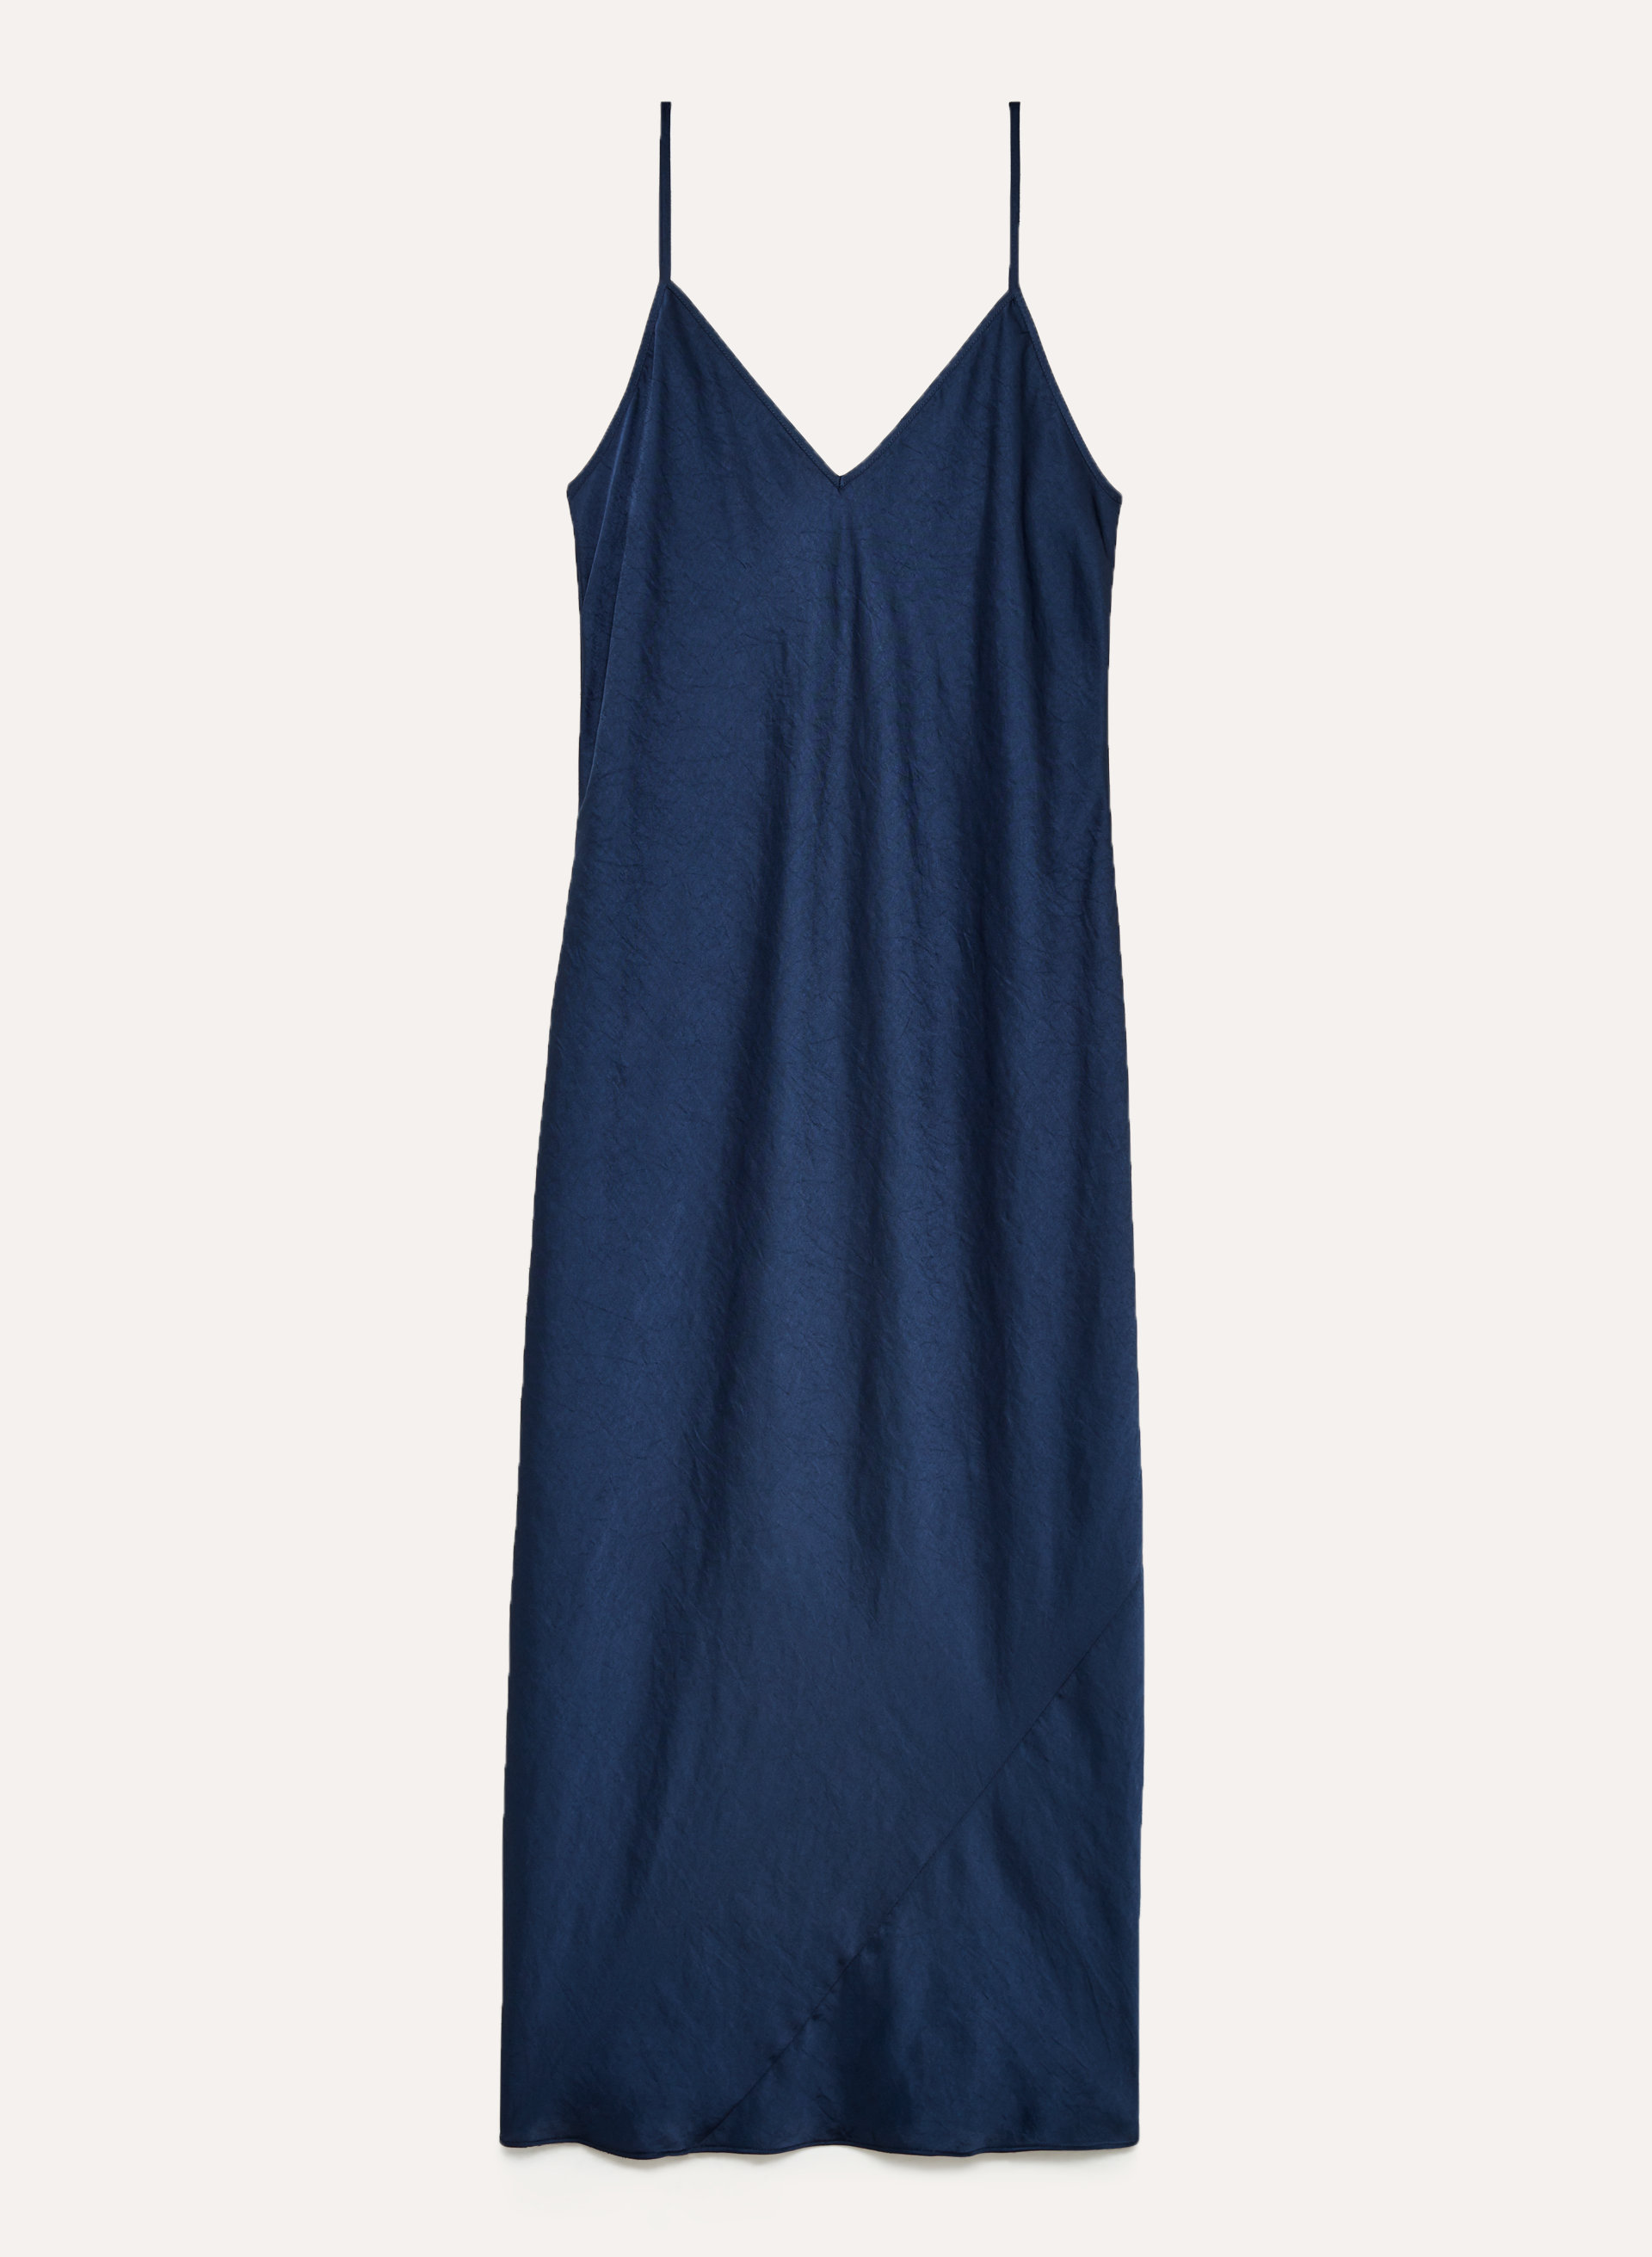 84b26b7506bbb Best Slip Dresses To Buy For Day And Night